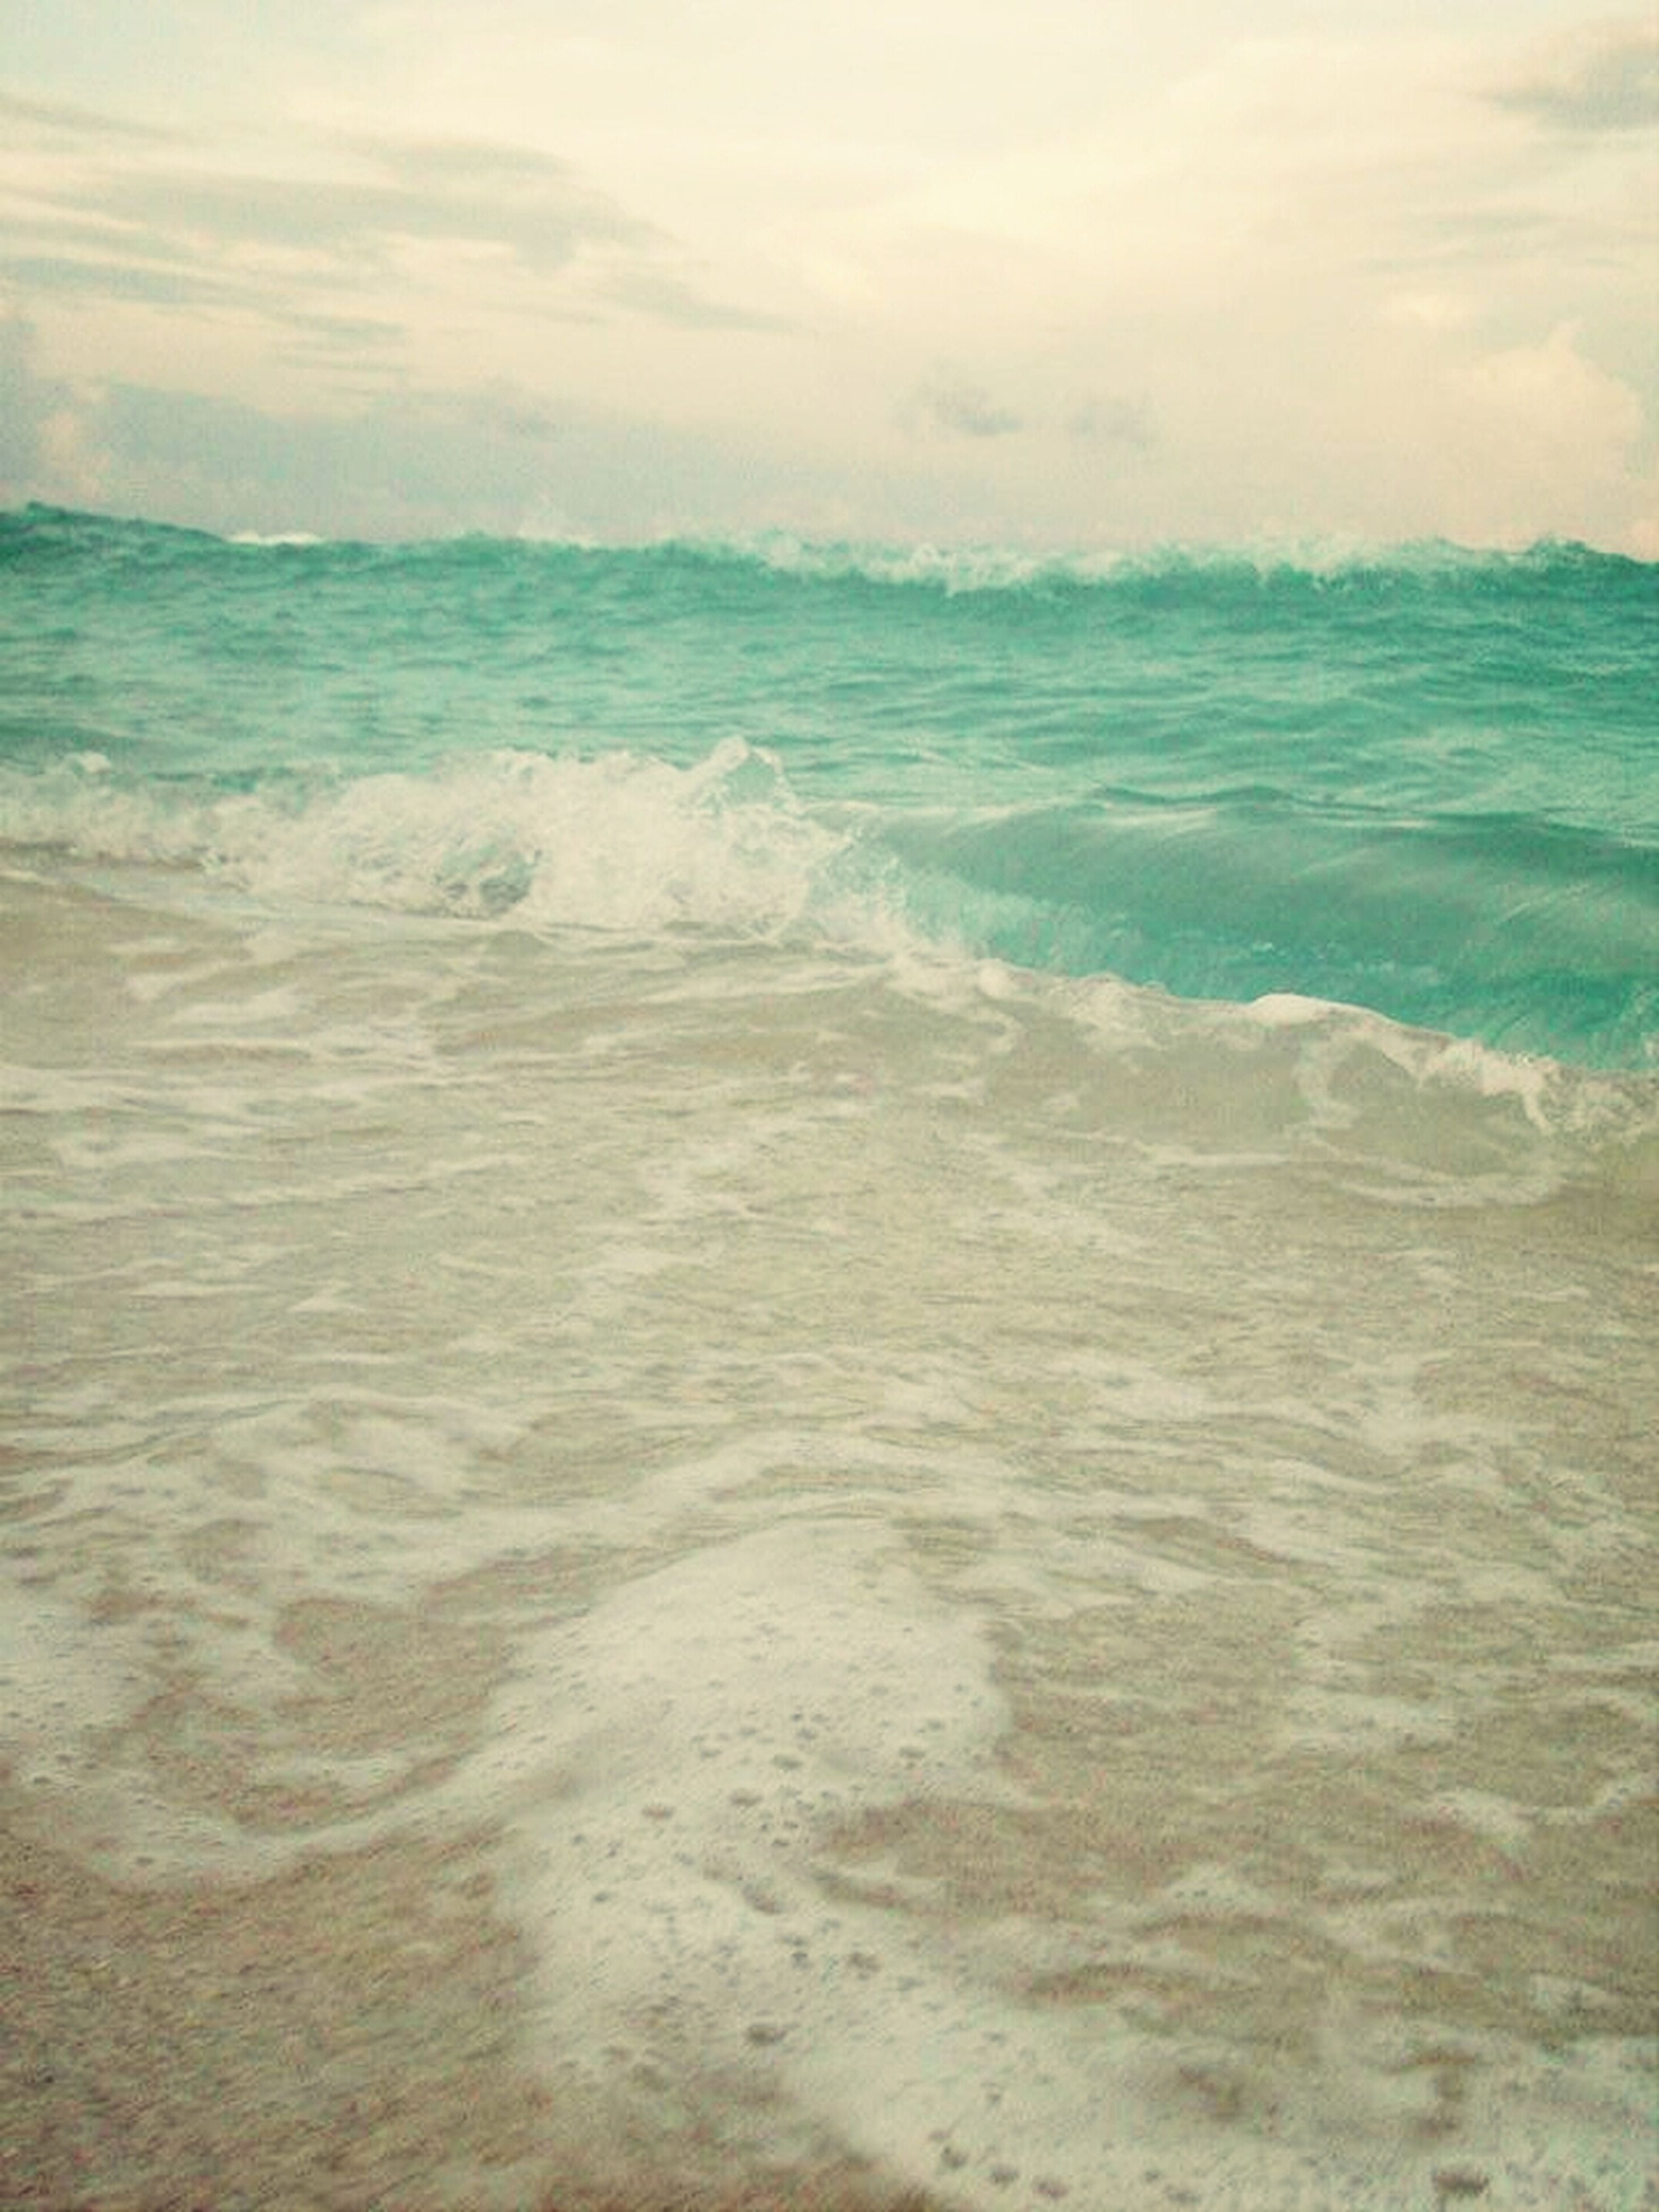 sea, water, horizon over water, wave, beach, scenics, beauty in nature, sky, surf, tranquil scene, shore, tranquility, nature, motion, cloud - sky, idyllic, sand, seascape, waterfront, day